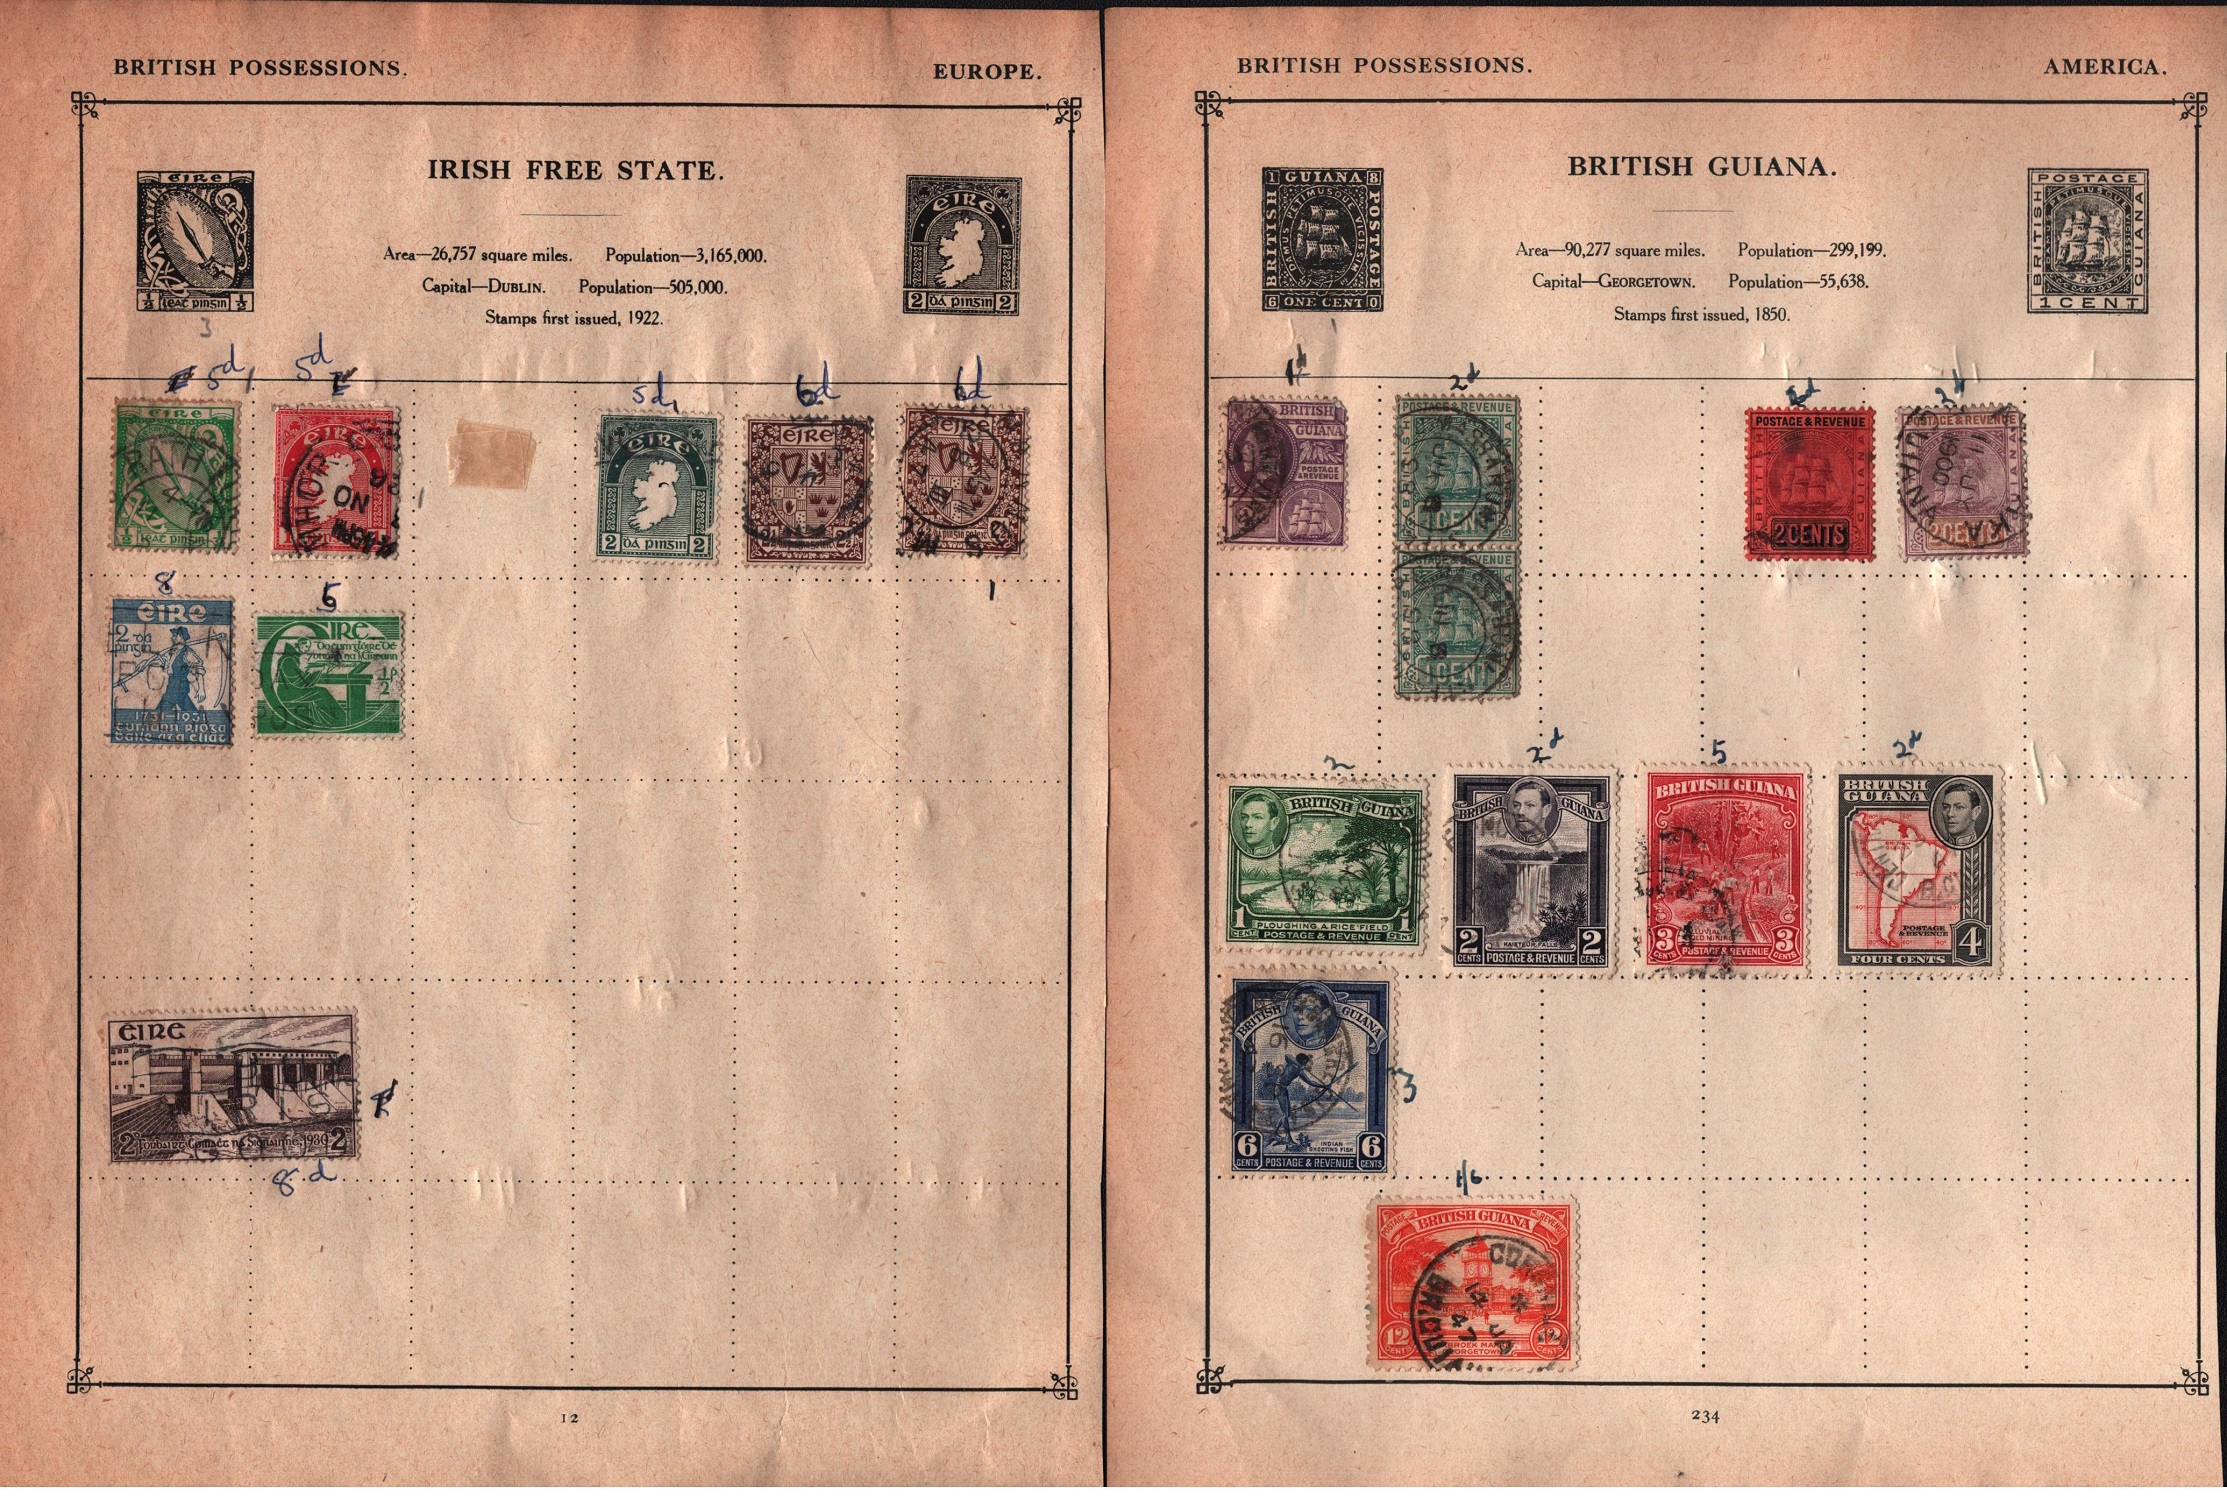 BCW stamp collection on 17 loose pages. Includes Jamaica, Ireland and more. Good condition. We